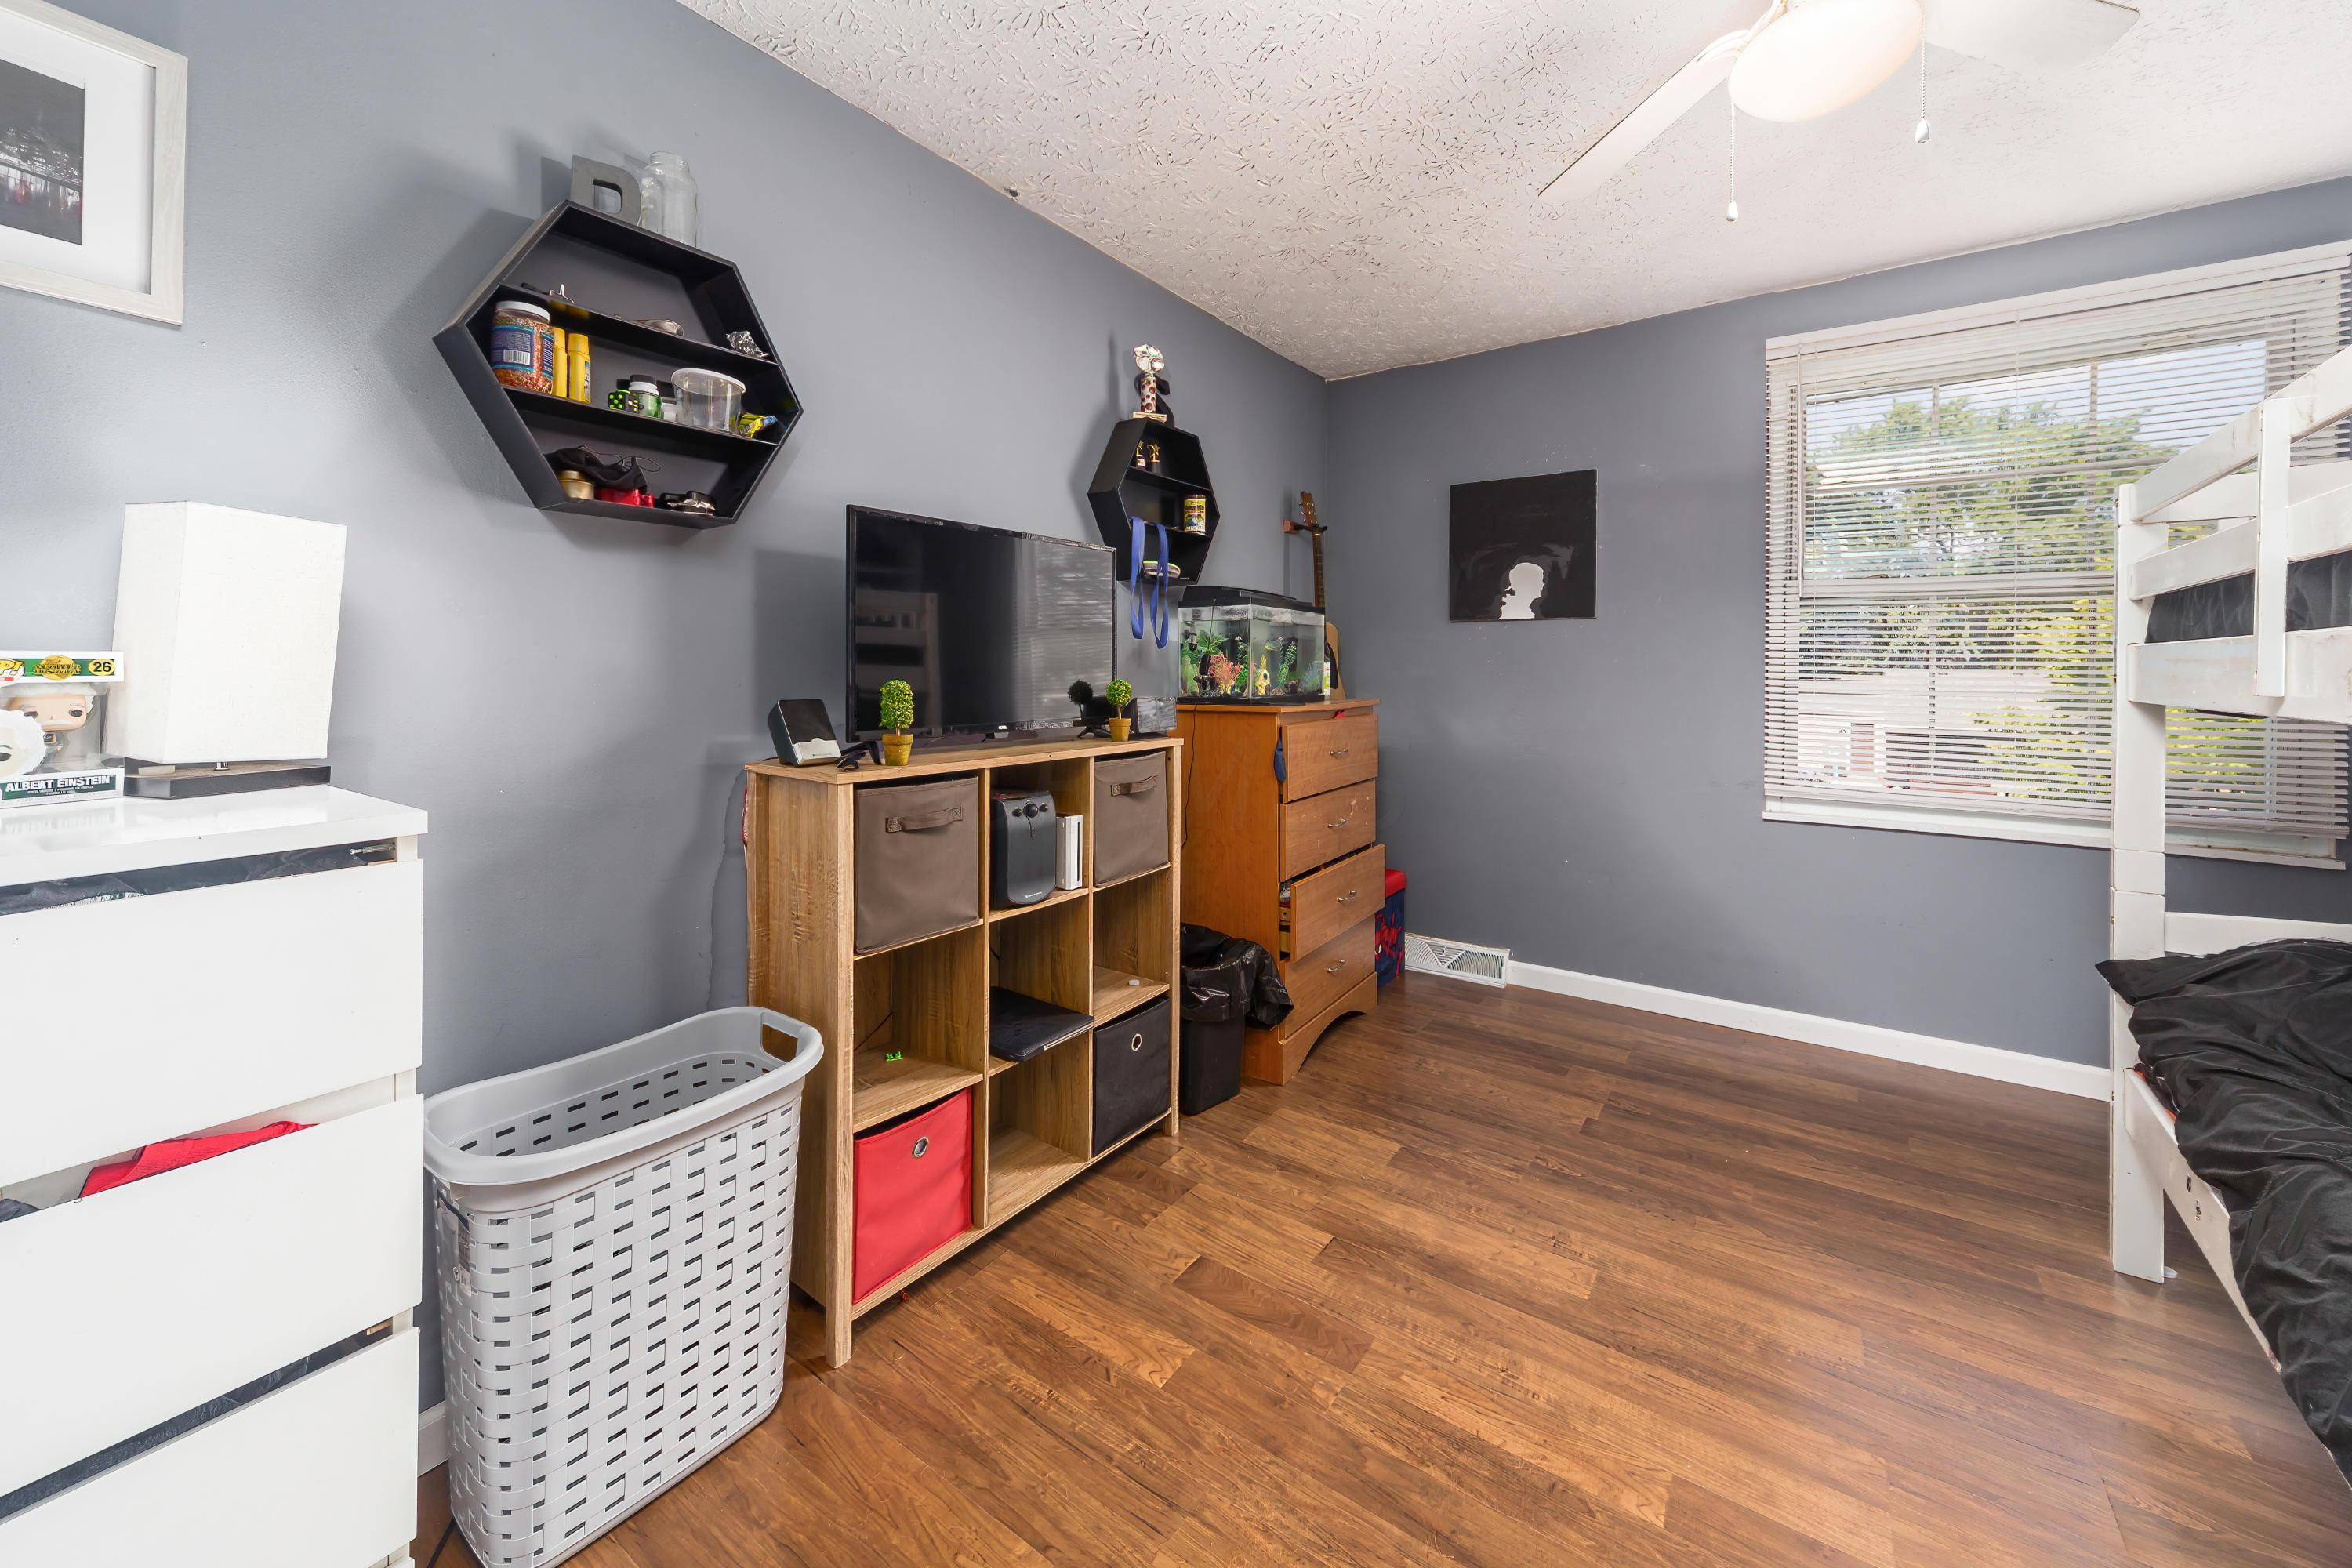 649 Dukewell Place, Galloway, Ohio 43119, 4 Bedrooms Bedrooms, ,2 BathroomsBathrooms,Residential,For Sale,Dukewell,220025502